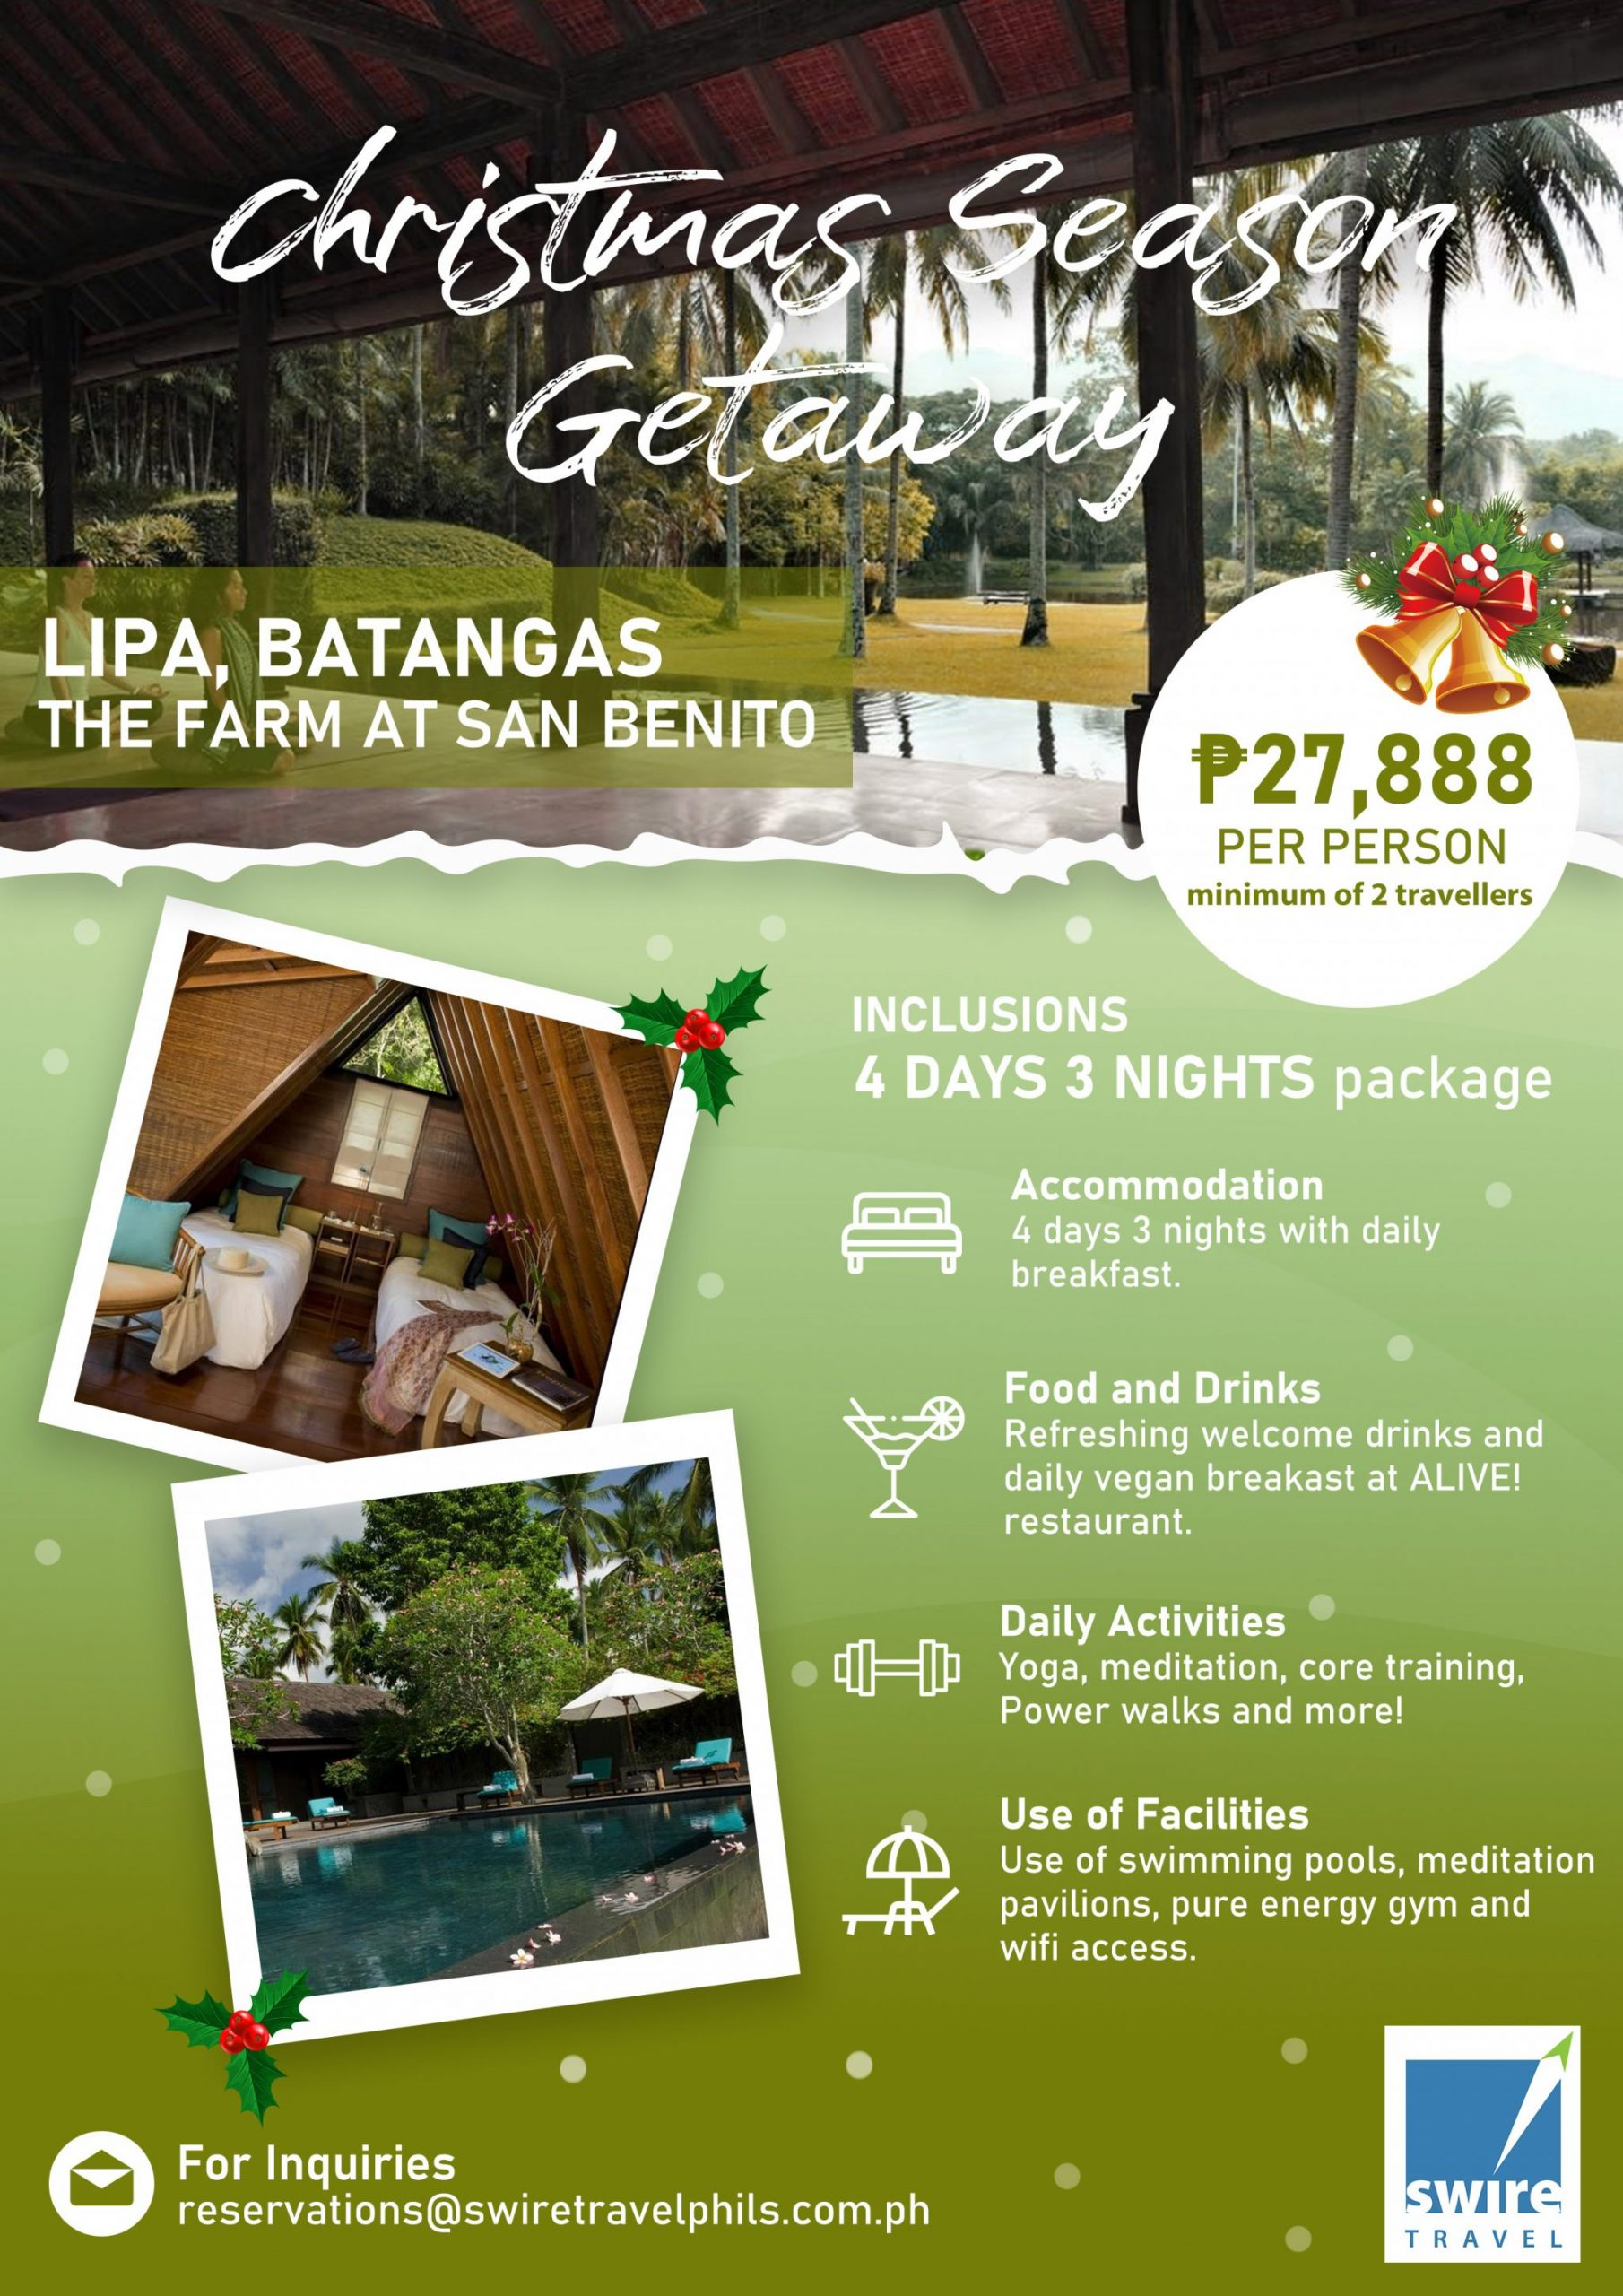 Lipa Batangas - The Farm at San Benito